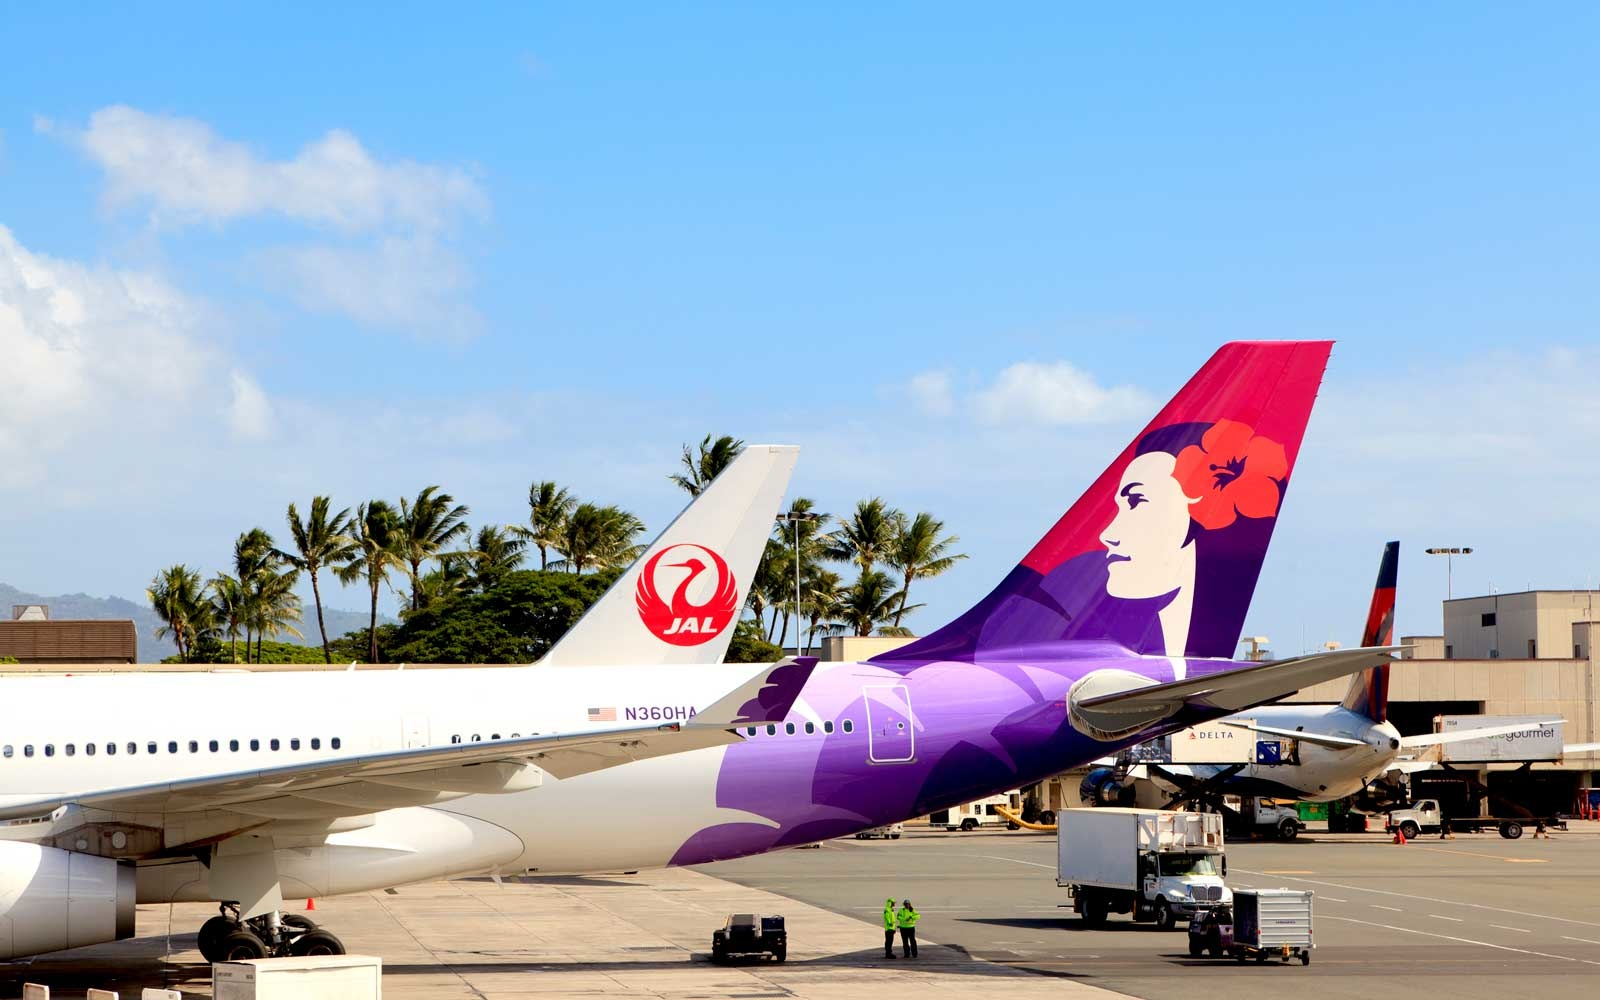 Best Us Airlines 2020 New Direct Flights Between Honolulu and Japan Expected to Take Off